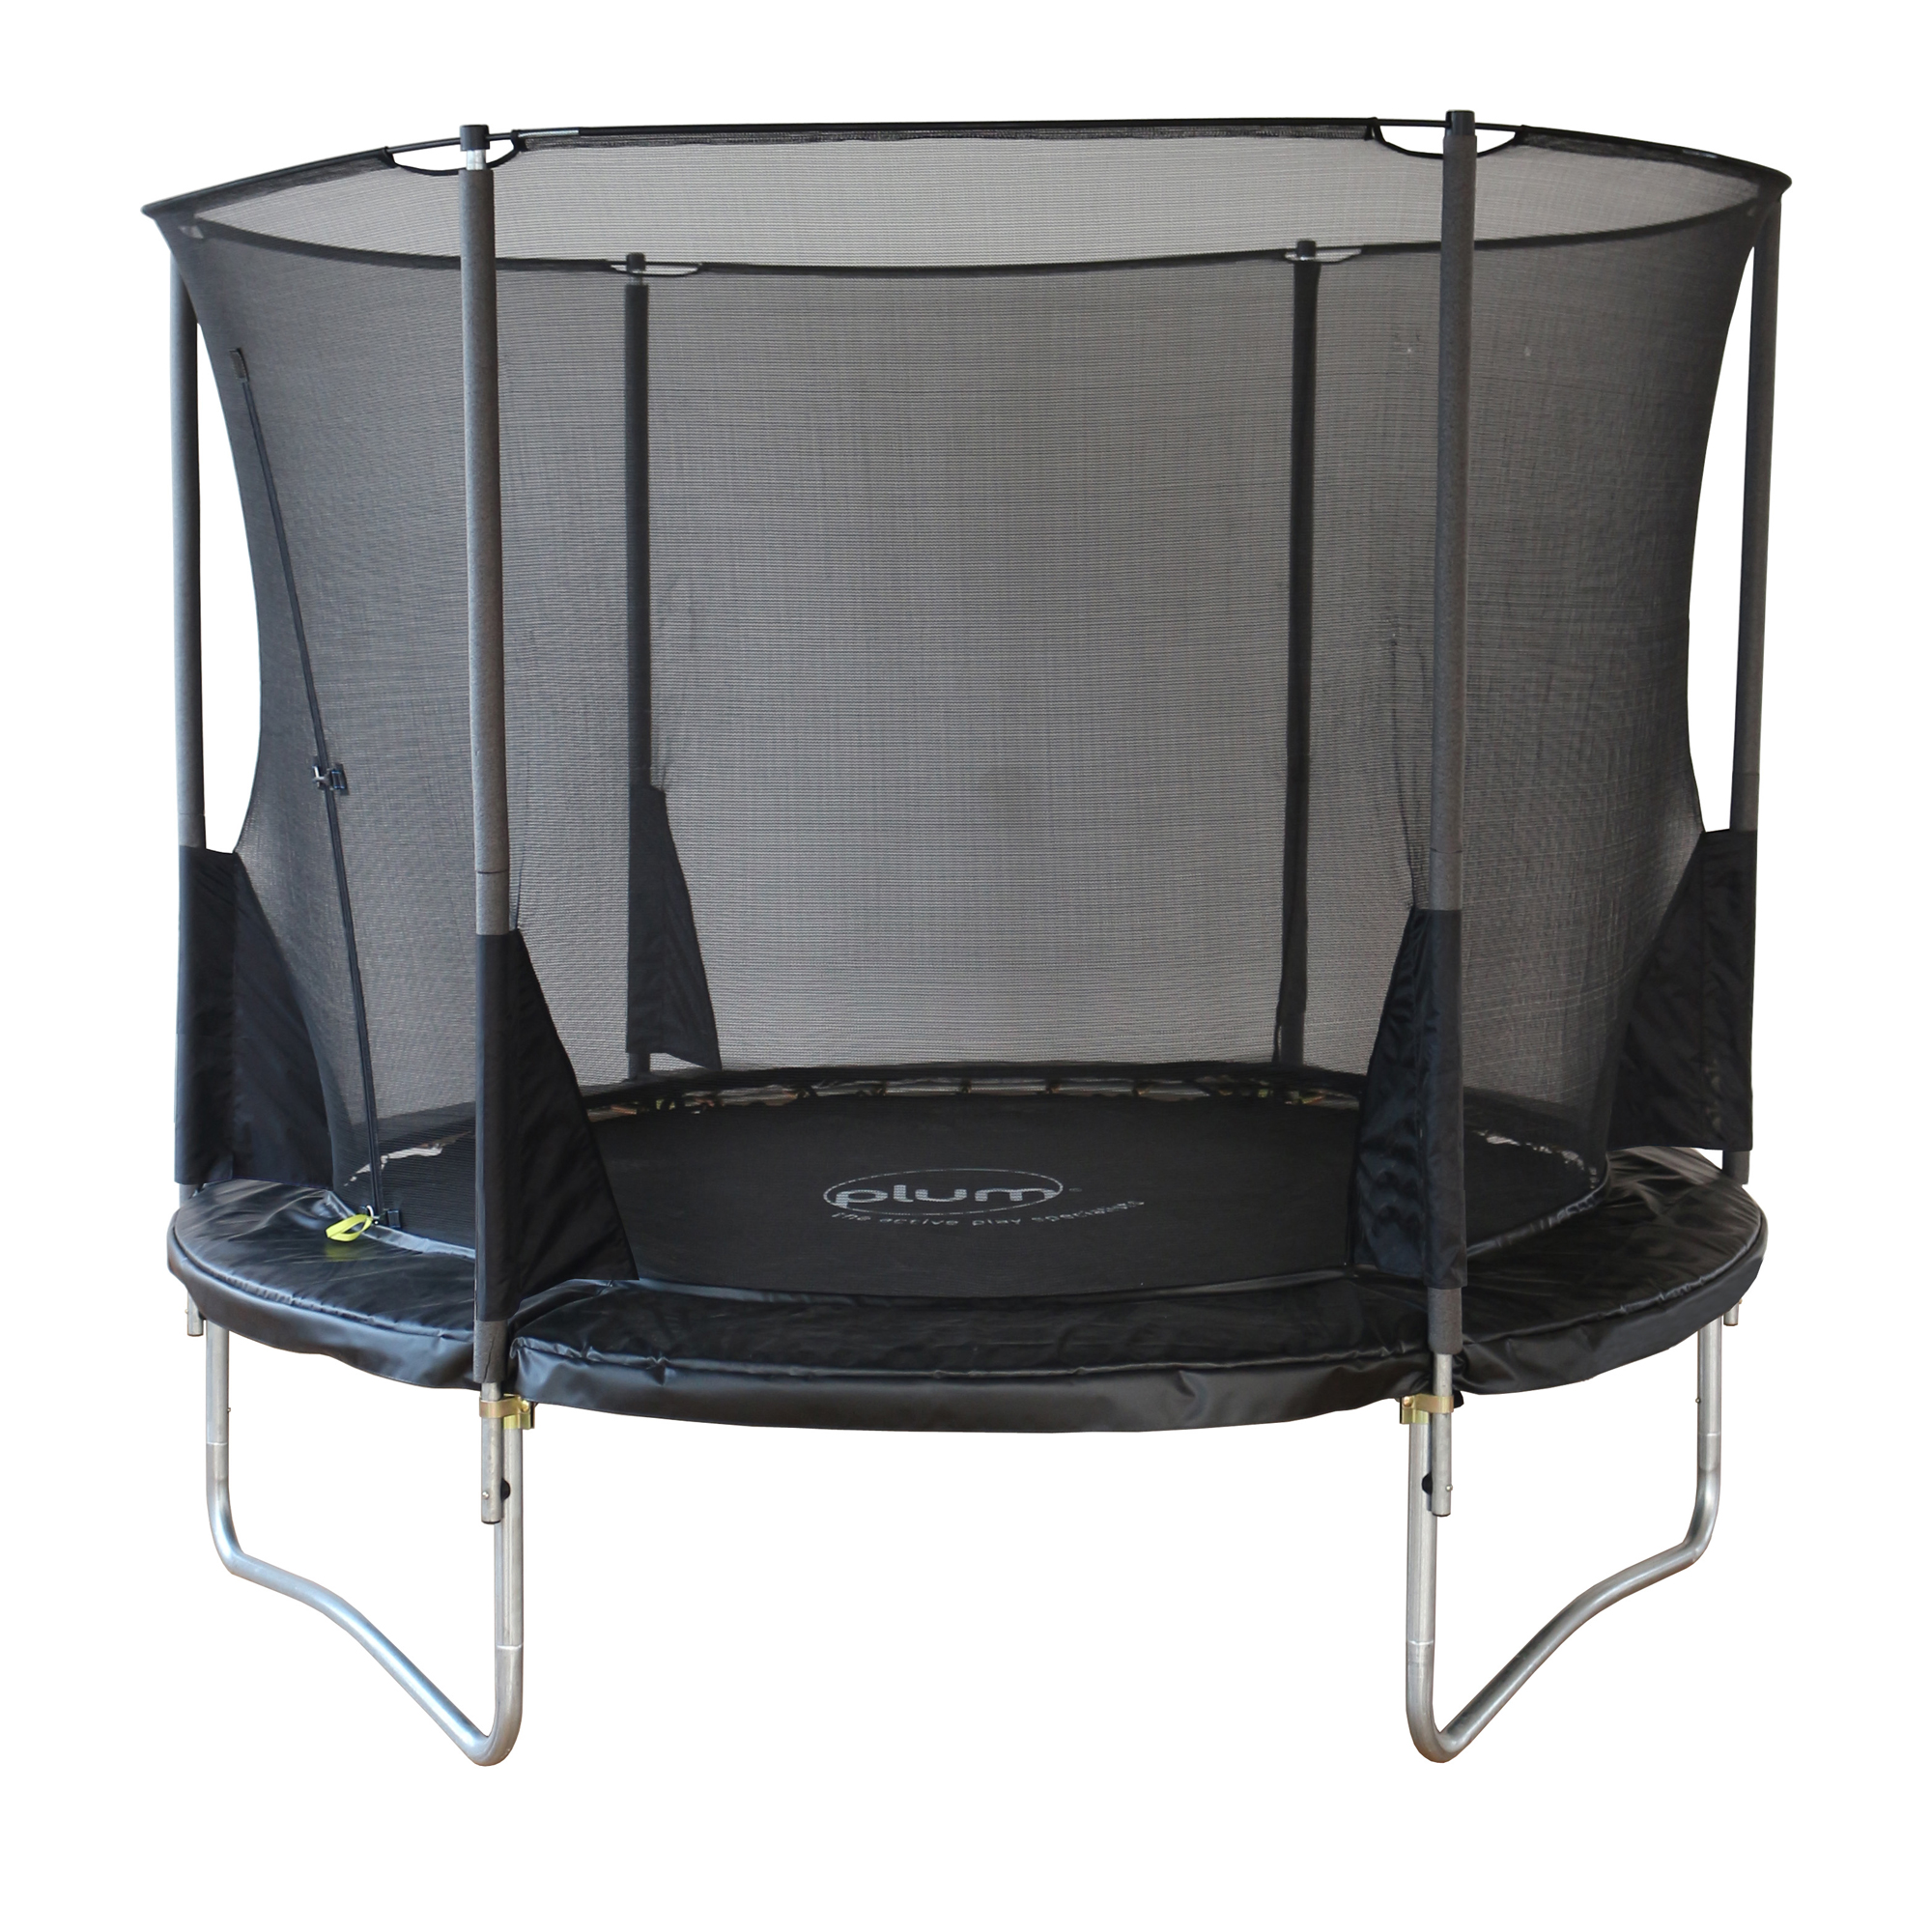 Spacezone Trampoline & Enclosure - 14ft